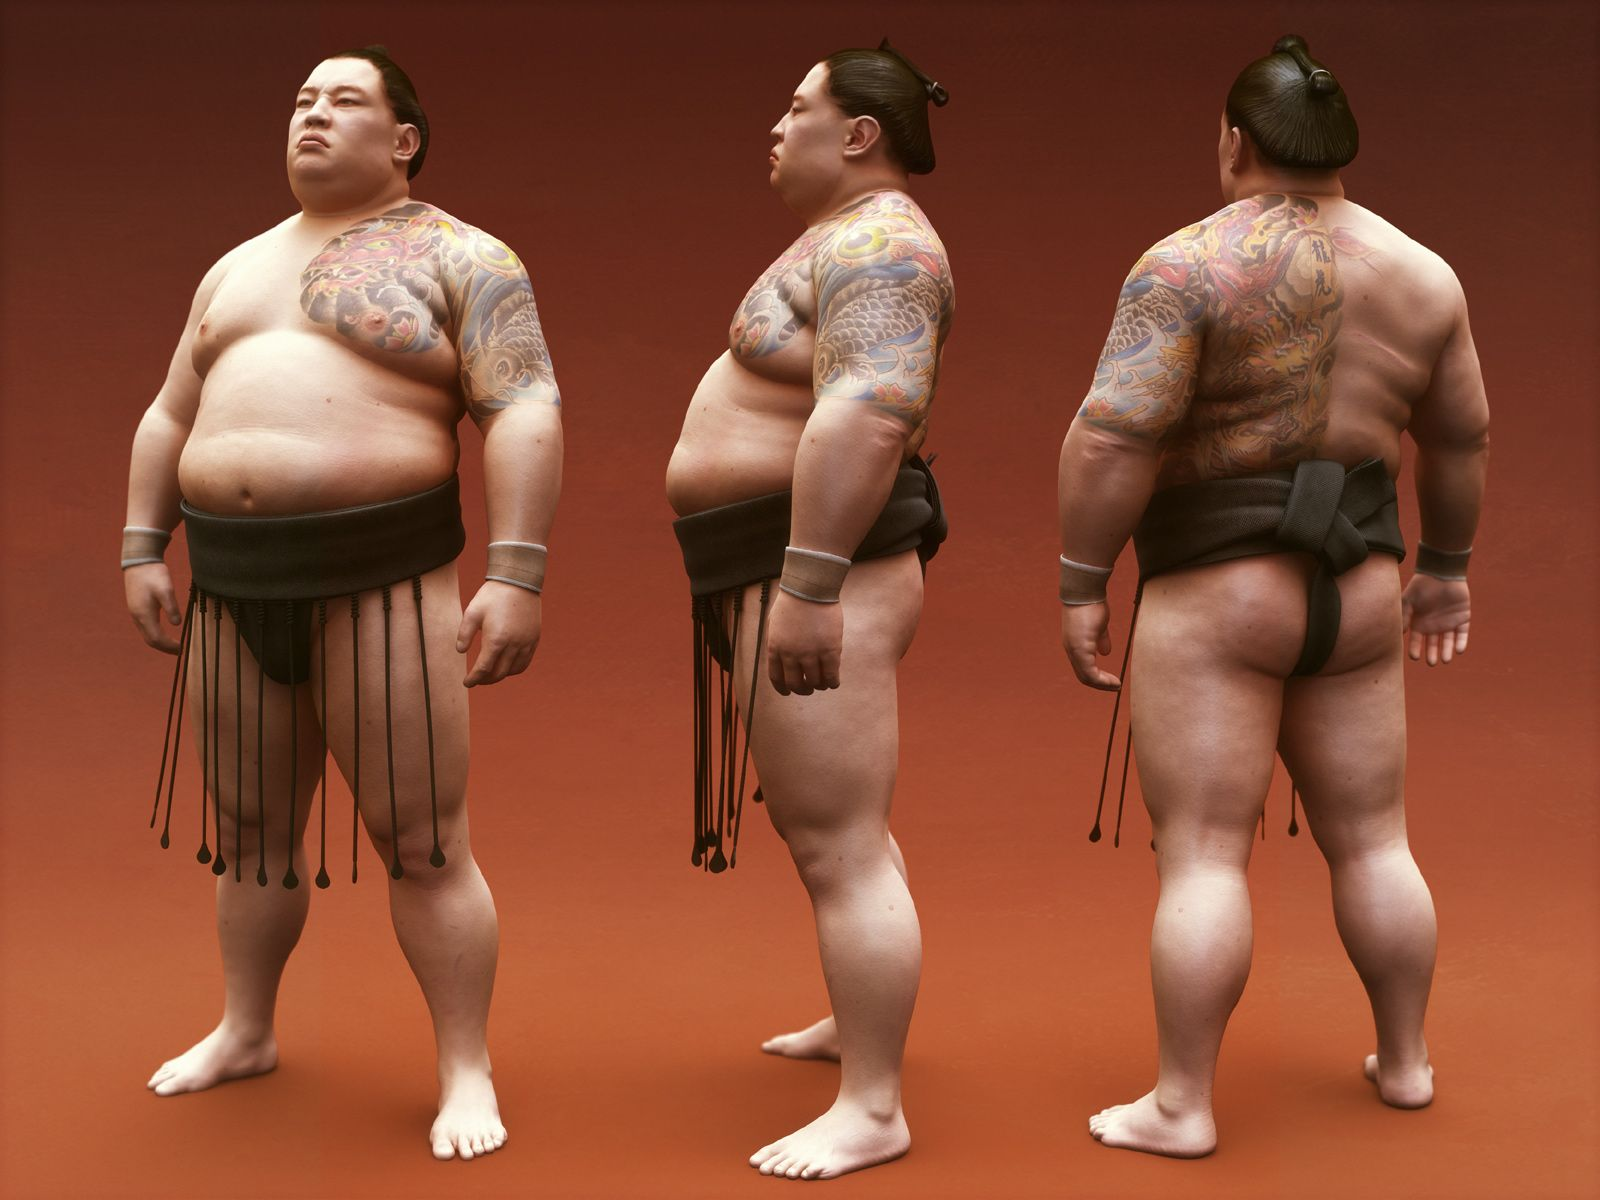 Sumo Wrestler Wallpaper HD Collection Sumo Sumo wrestler 1600x1200